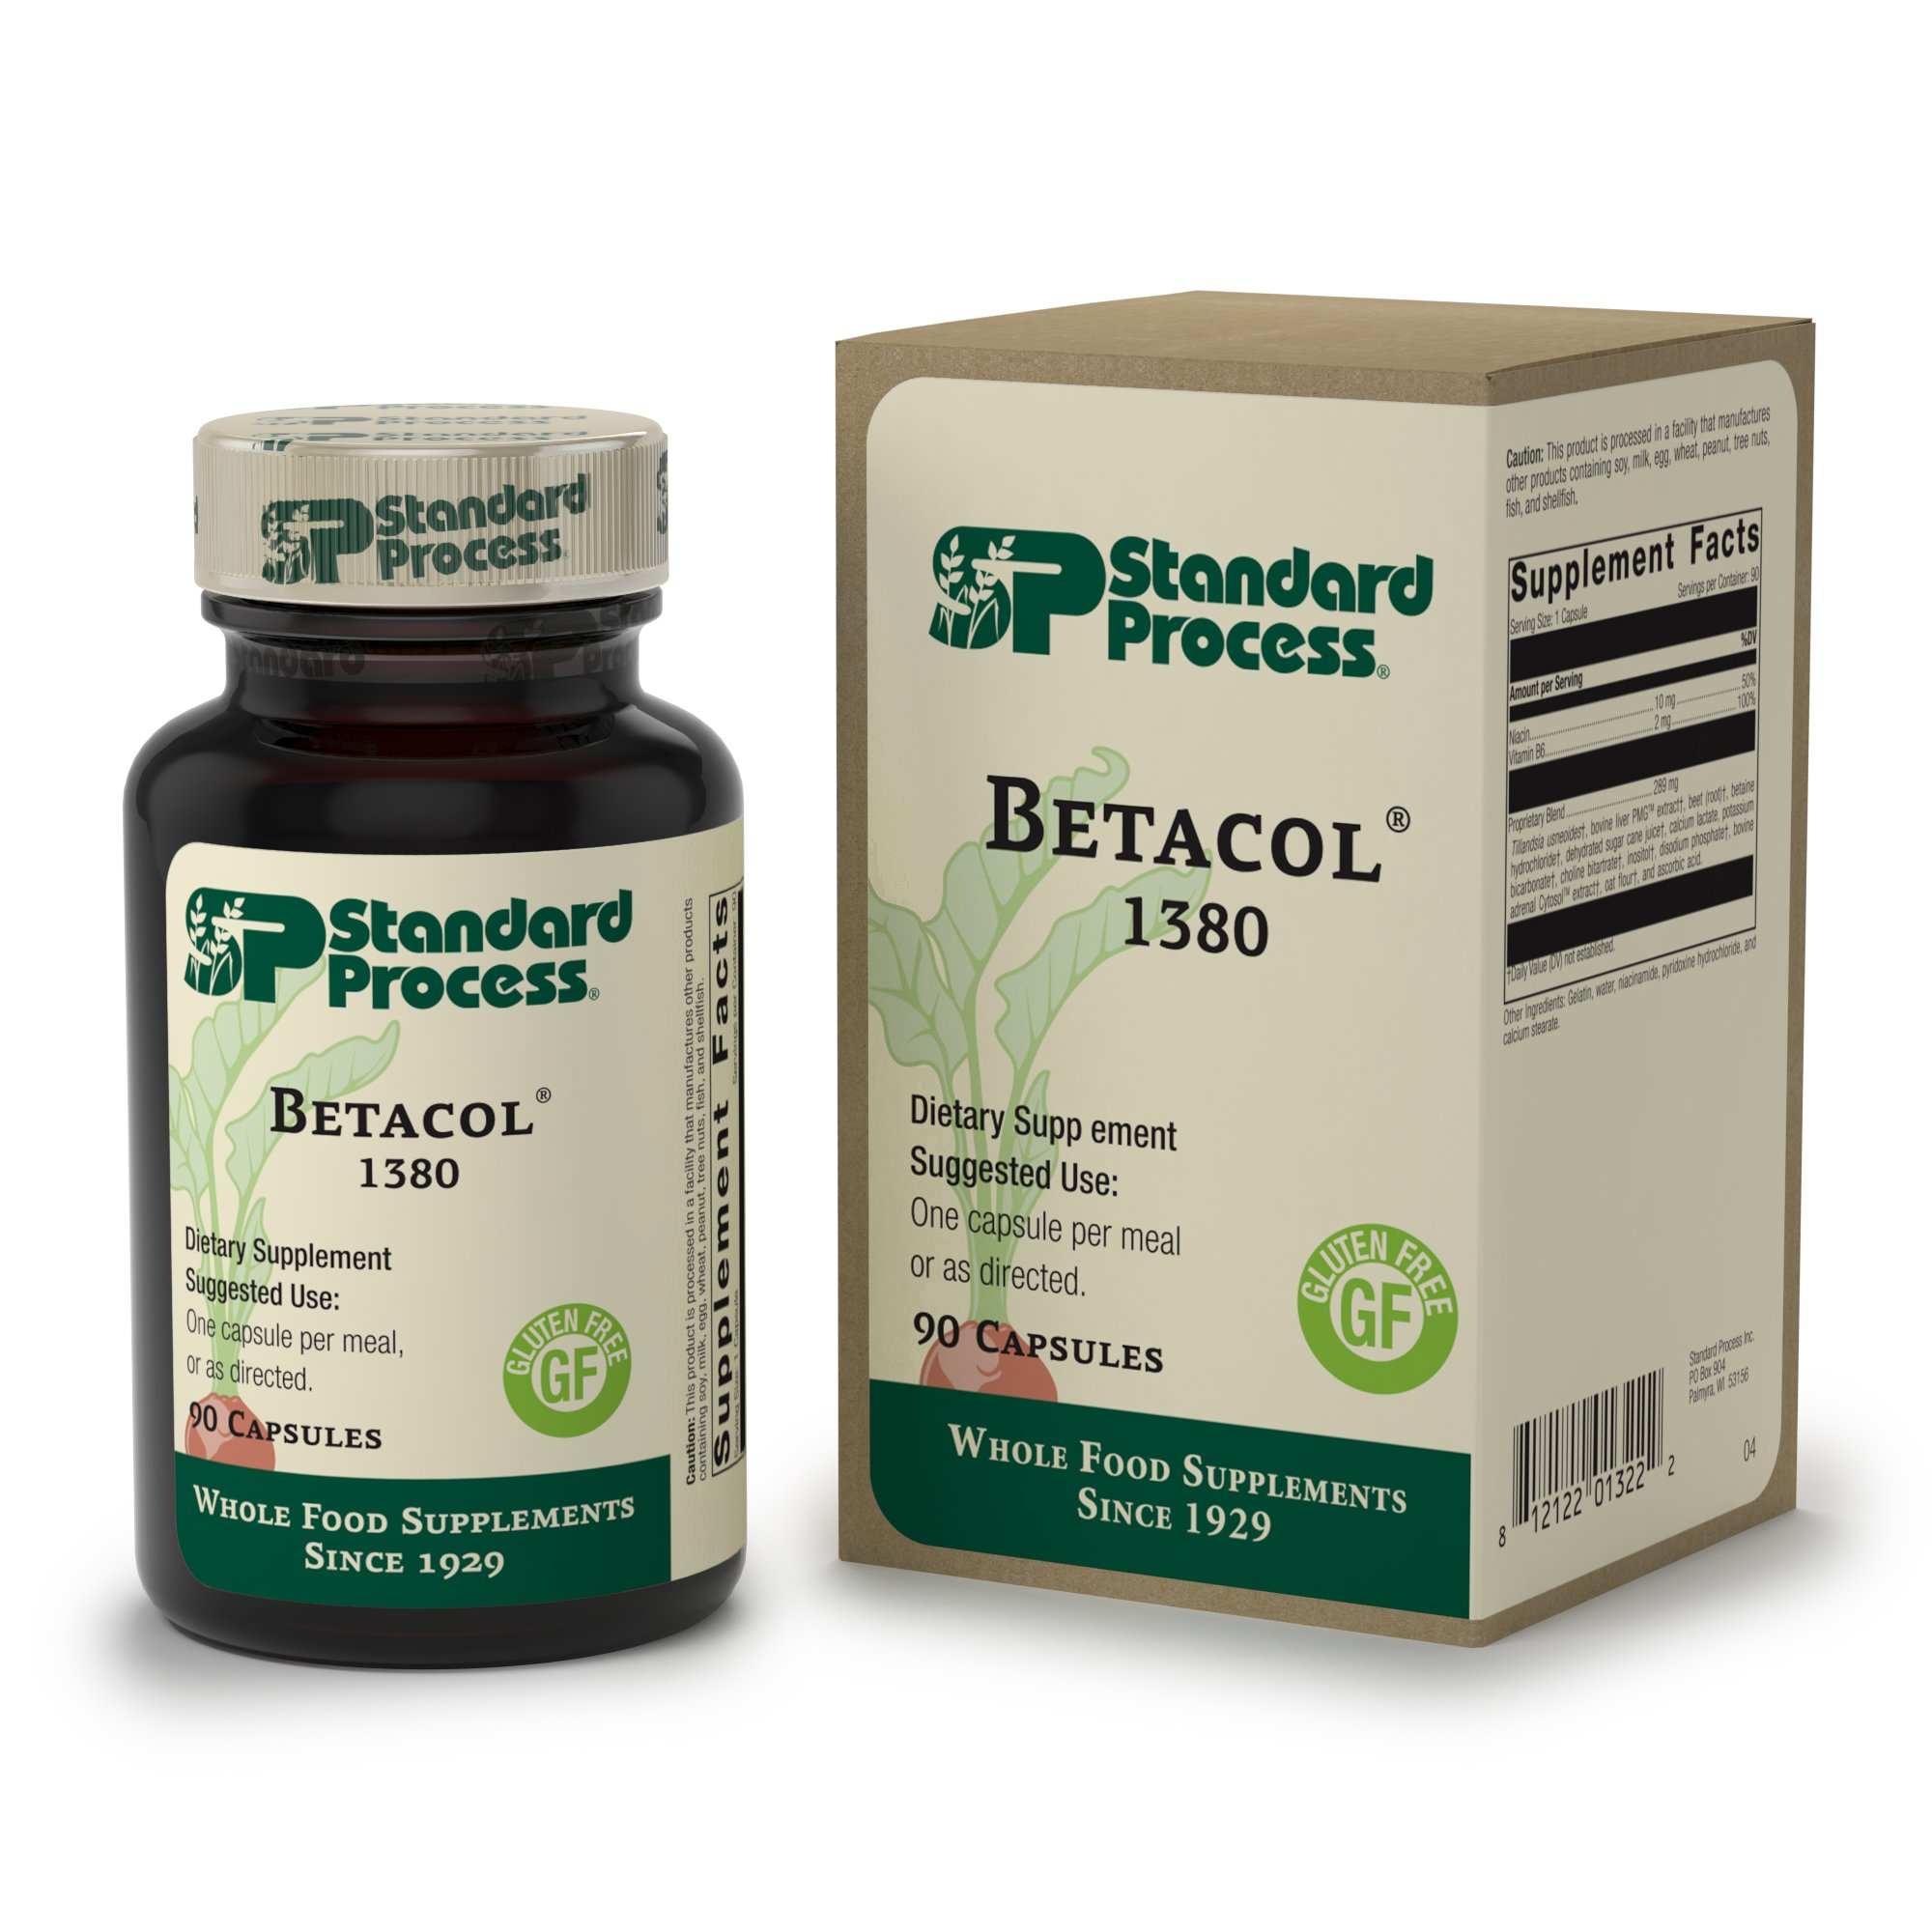 Standard Process - Betacol - Liver Supplement, 10 mg Niacin, 2 mg Vitamin B6, Tillandsia Usneoides, Supports Healthy Liver Function and Protein Metabolism - 90 Capsules